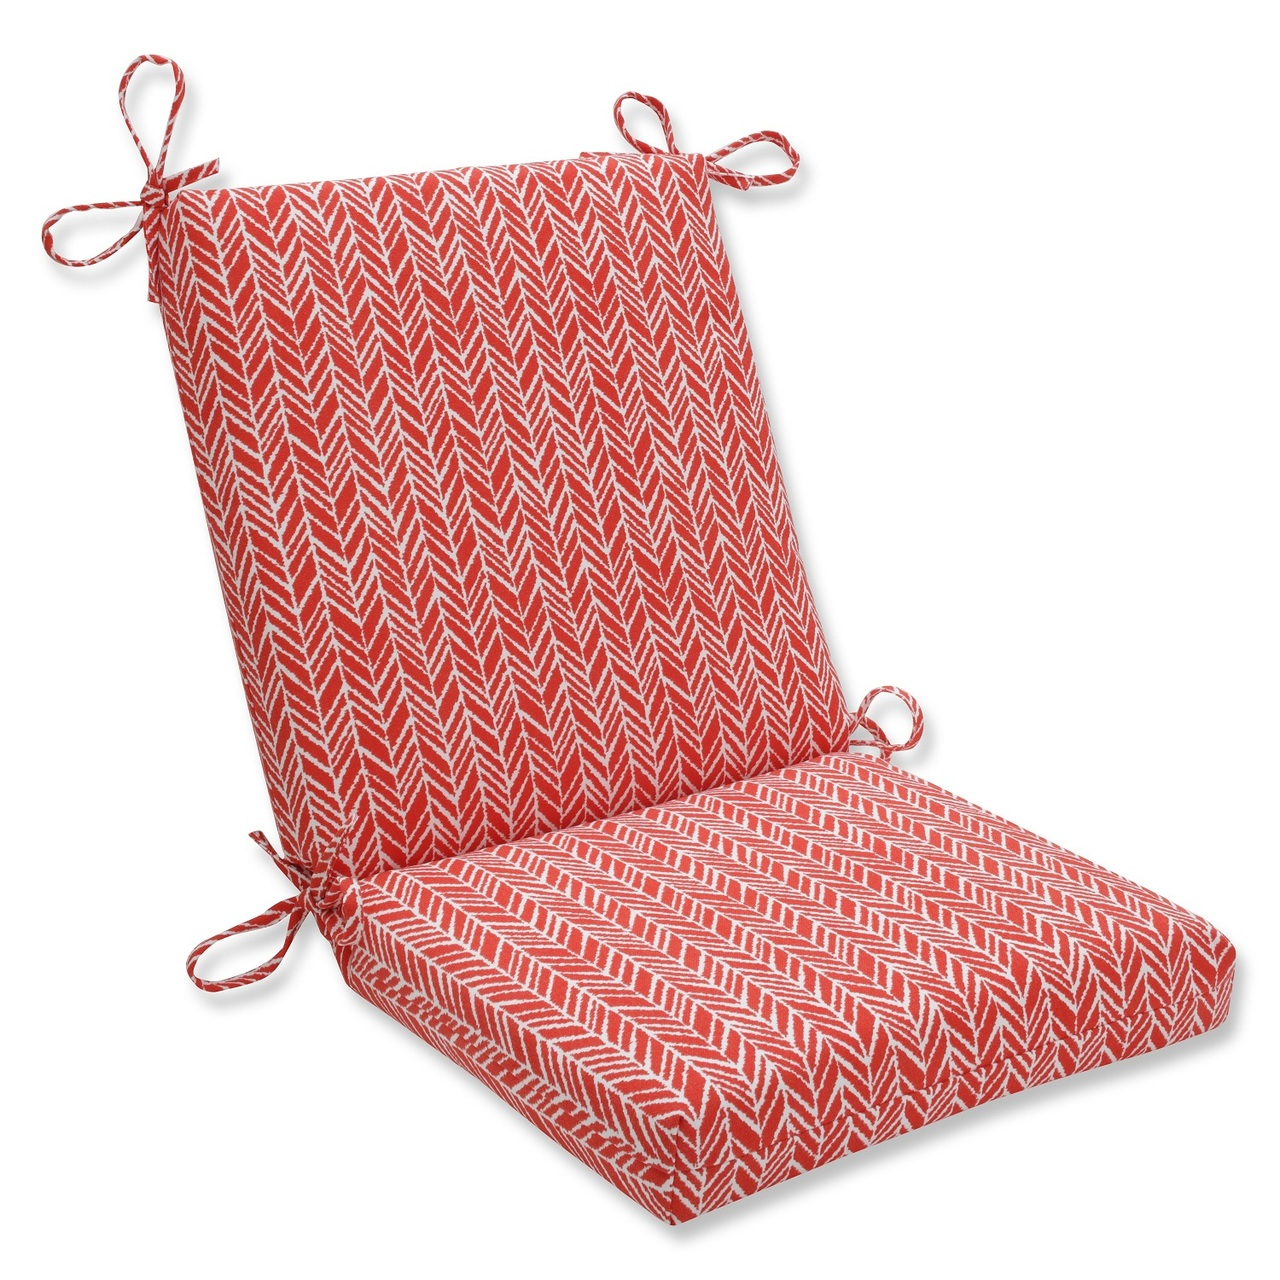 wicker chair cushions with ties chairitee 36 5 simplistic red white outdoor patio cushion cc living